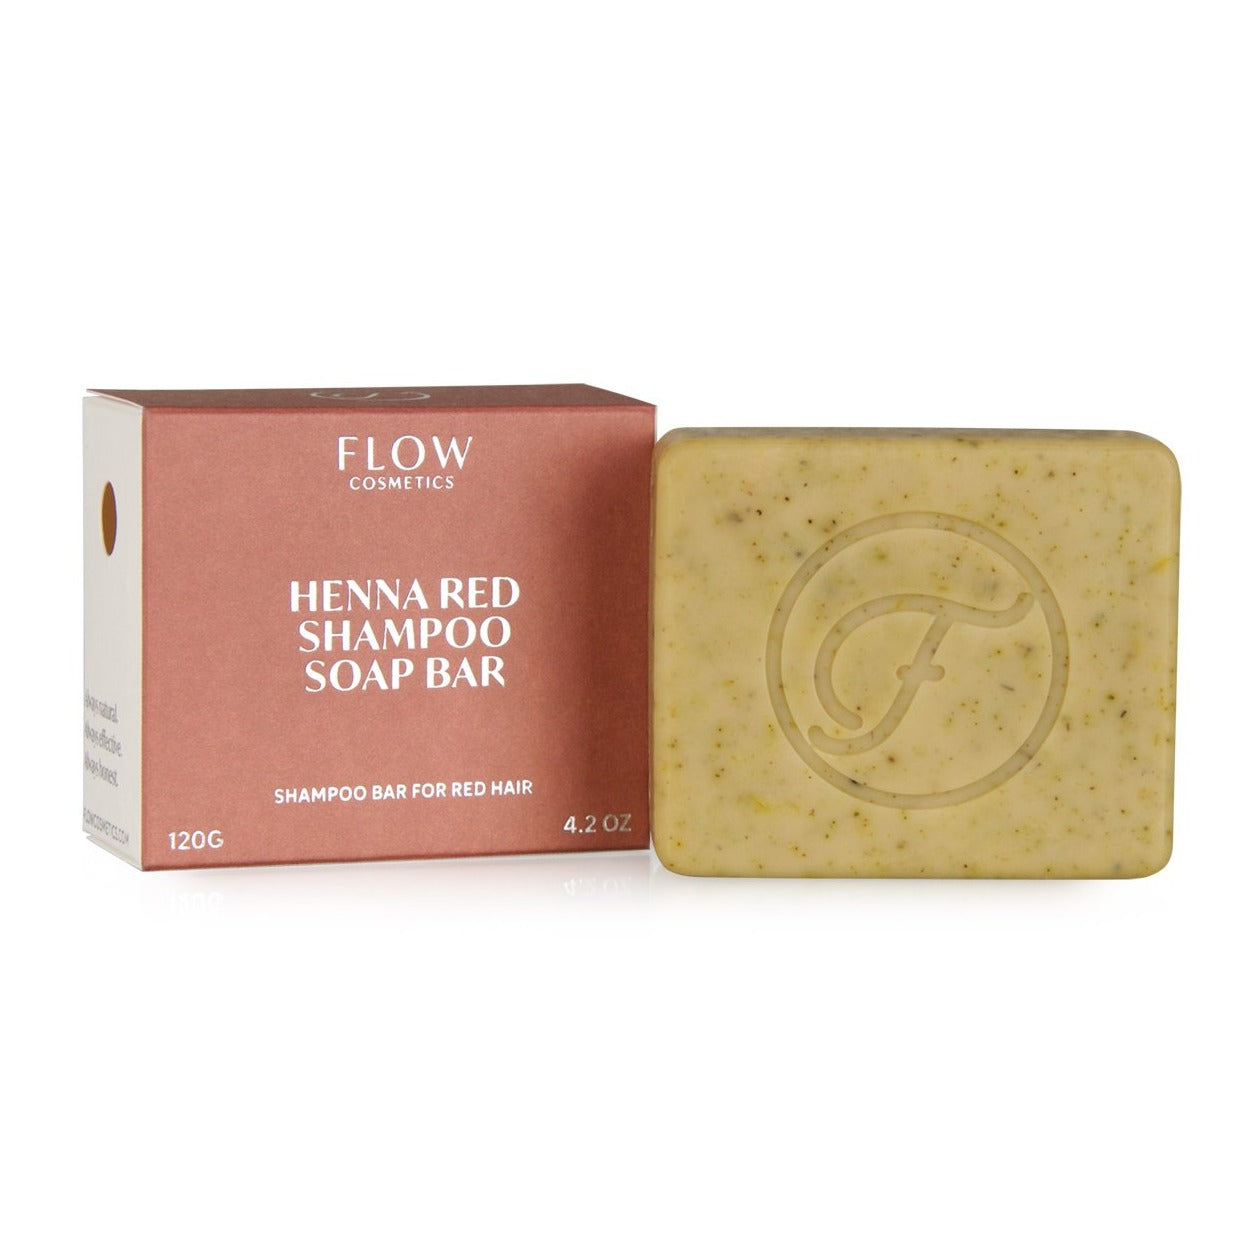 aura_beauty_flow_cosmetics_ Henna_Red_Shampoo_Soap_Bar